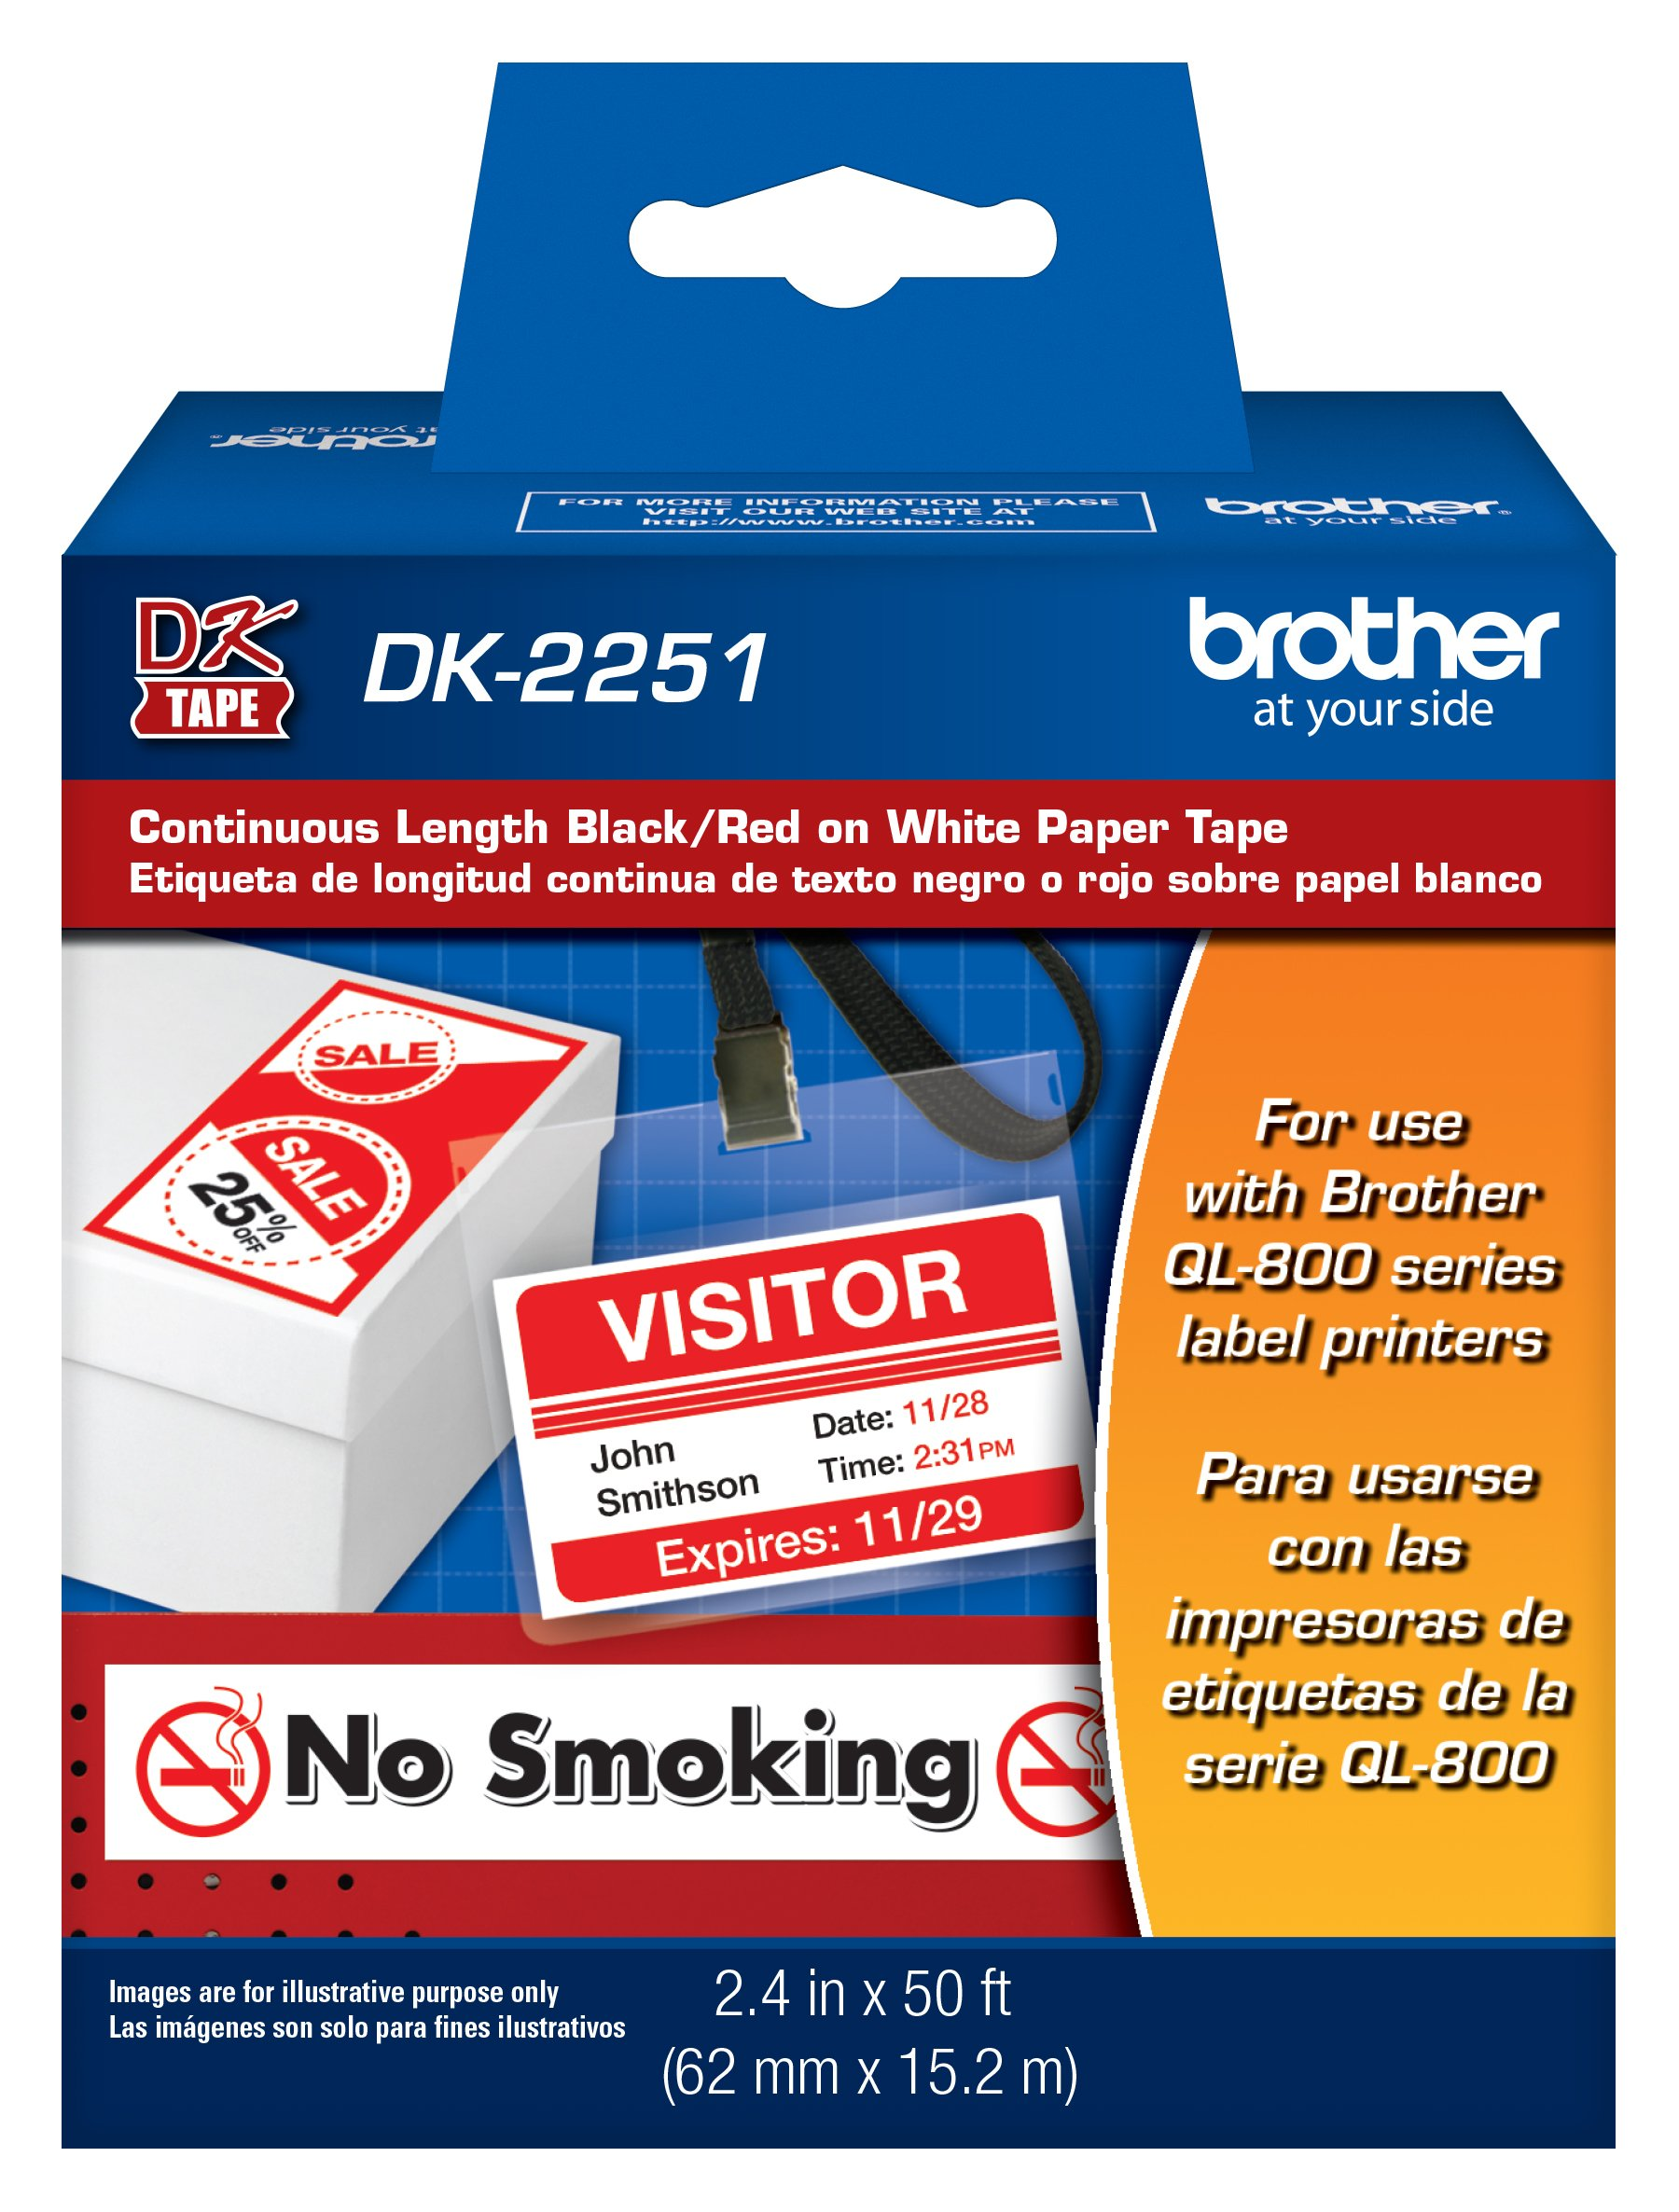 """Brother Genuine DK-2251 Continuous Length Replacement Labels, Black/Red Label on White Paper Tape, Engineered with Excellence, 2.4"""" x 50 feet, 1 Roll per Box"""